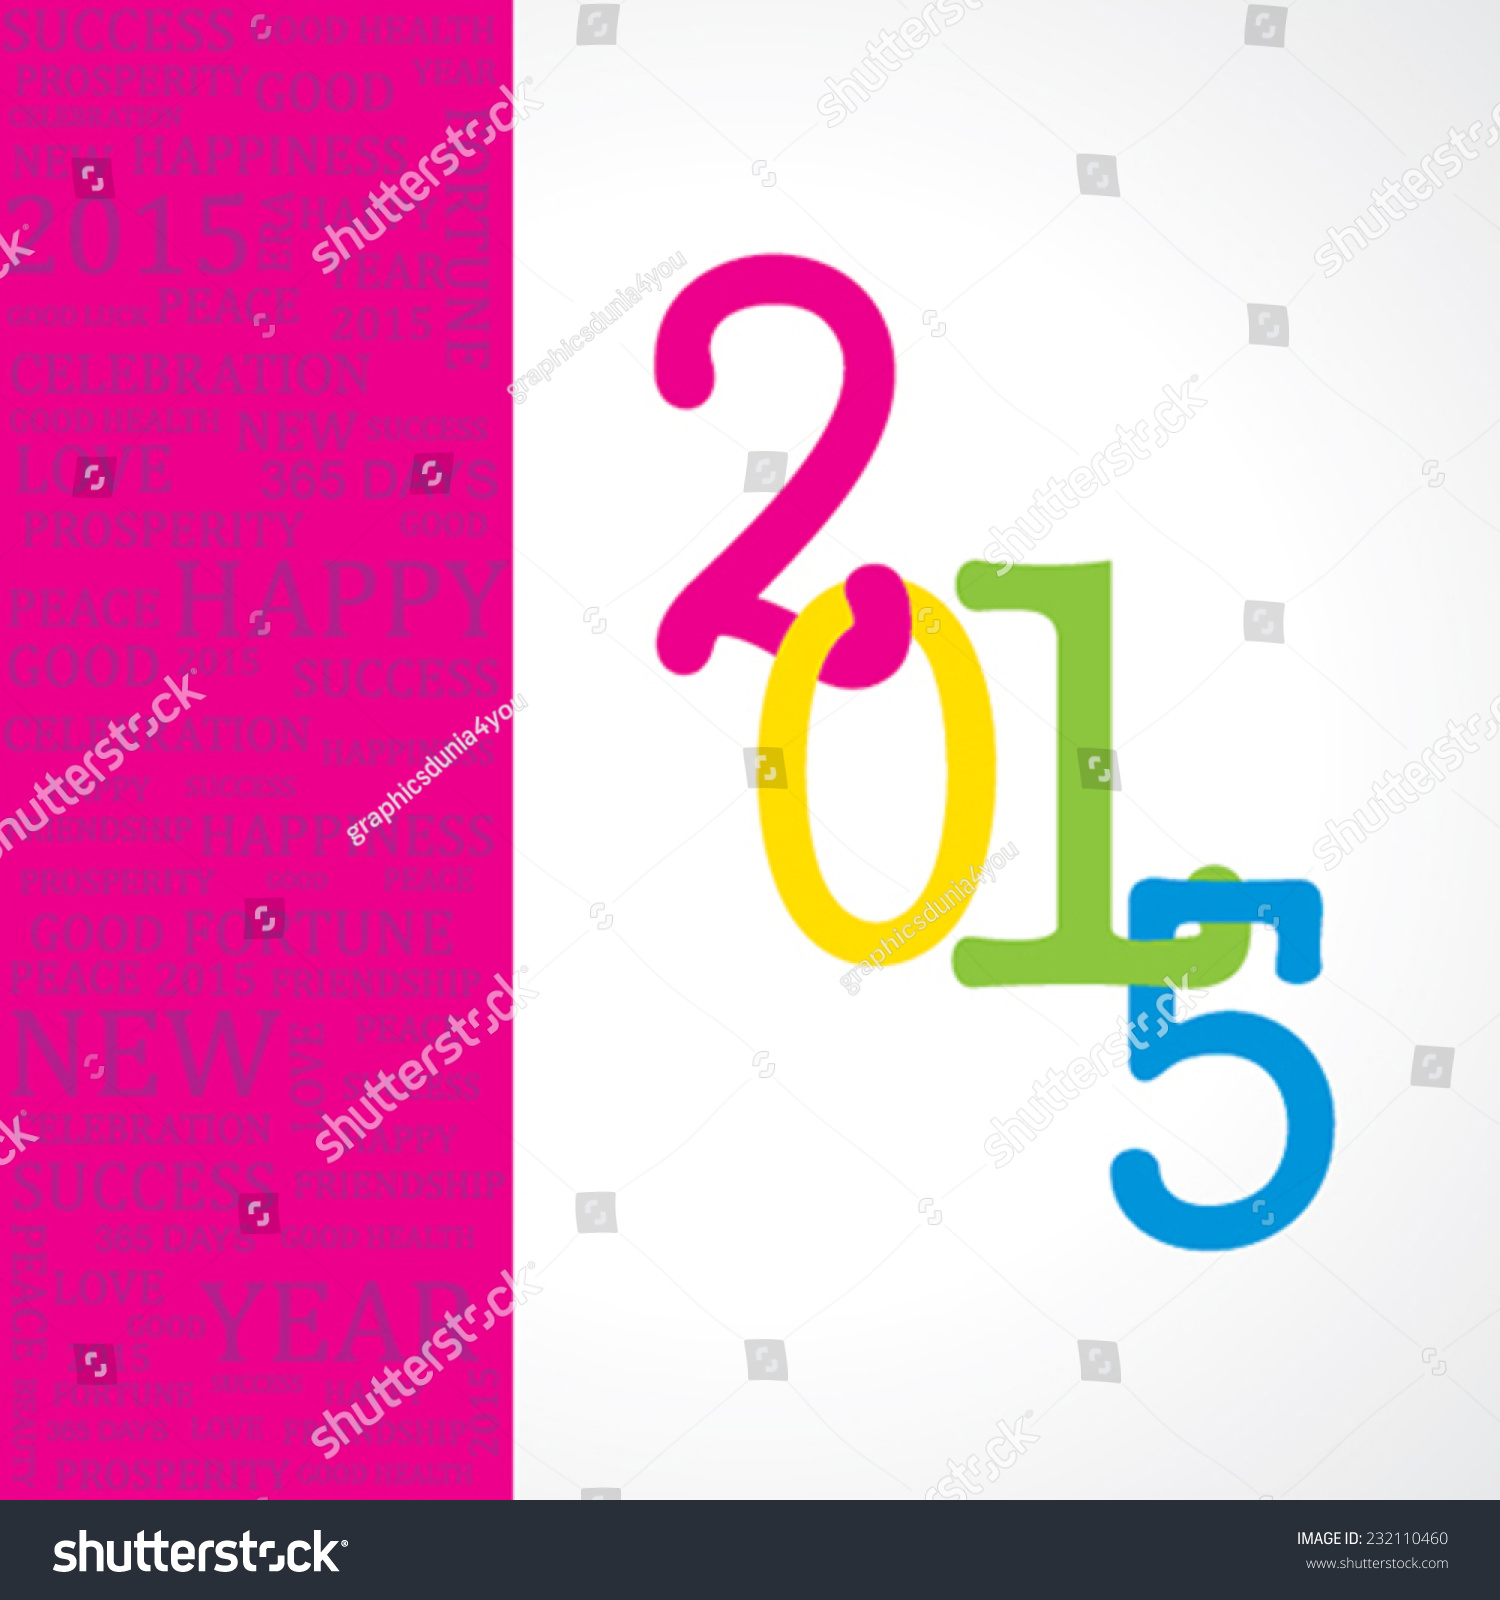 Creative greeting new year 2015 stock stock vector 232110460 creative greeting for new year 2015 stock vector kristyandbryce Gallery